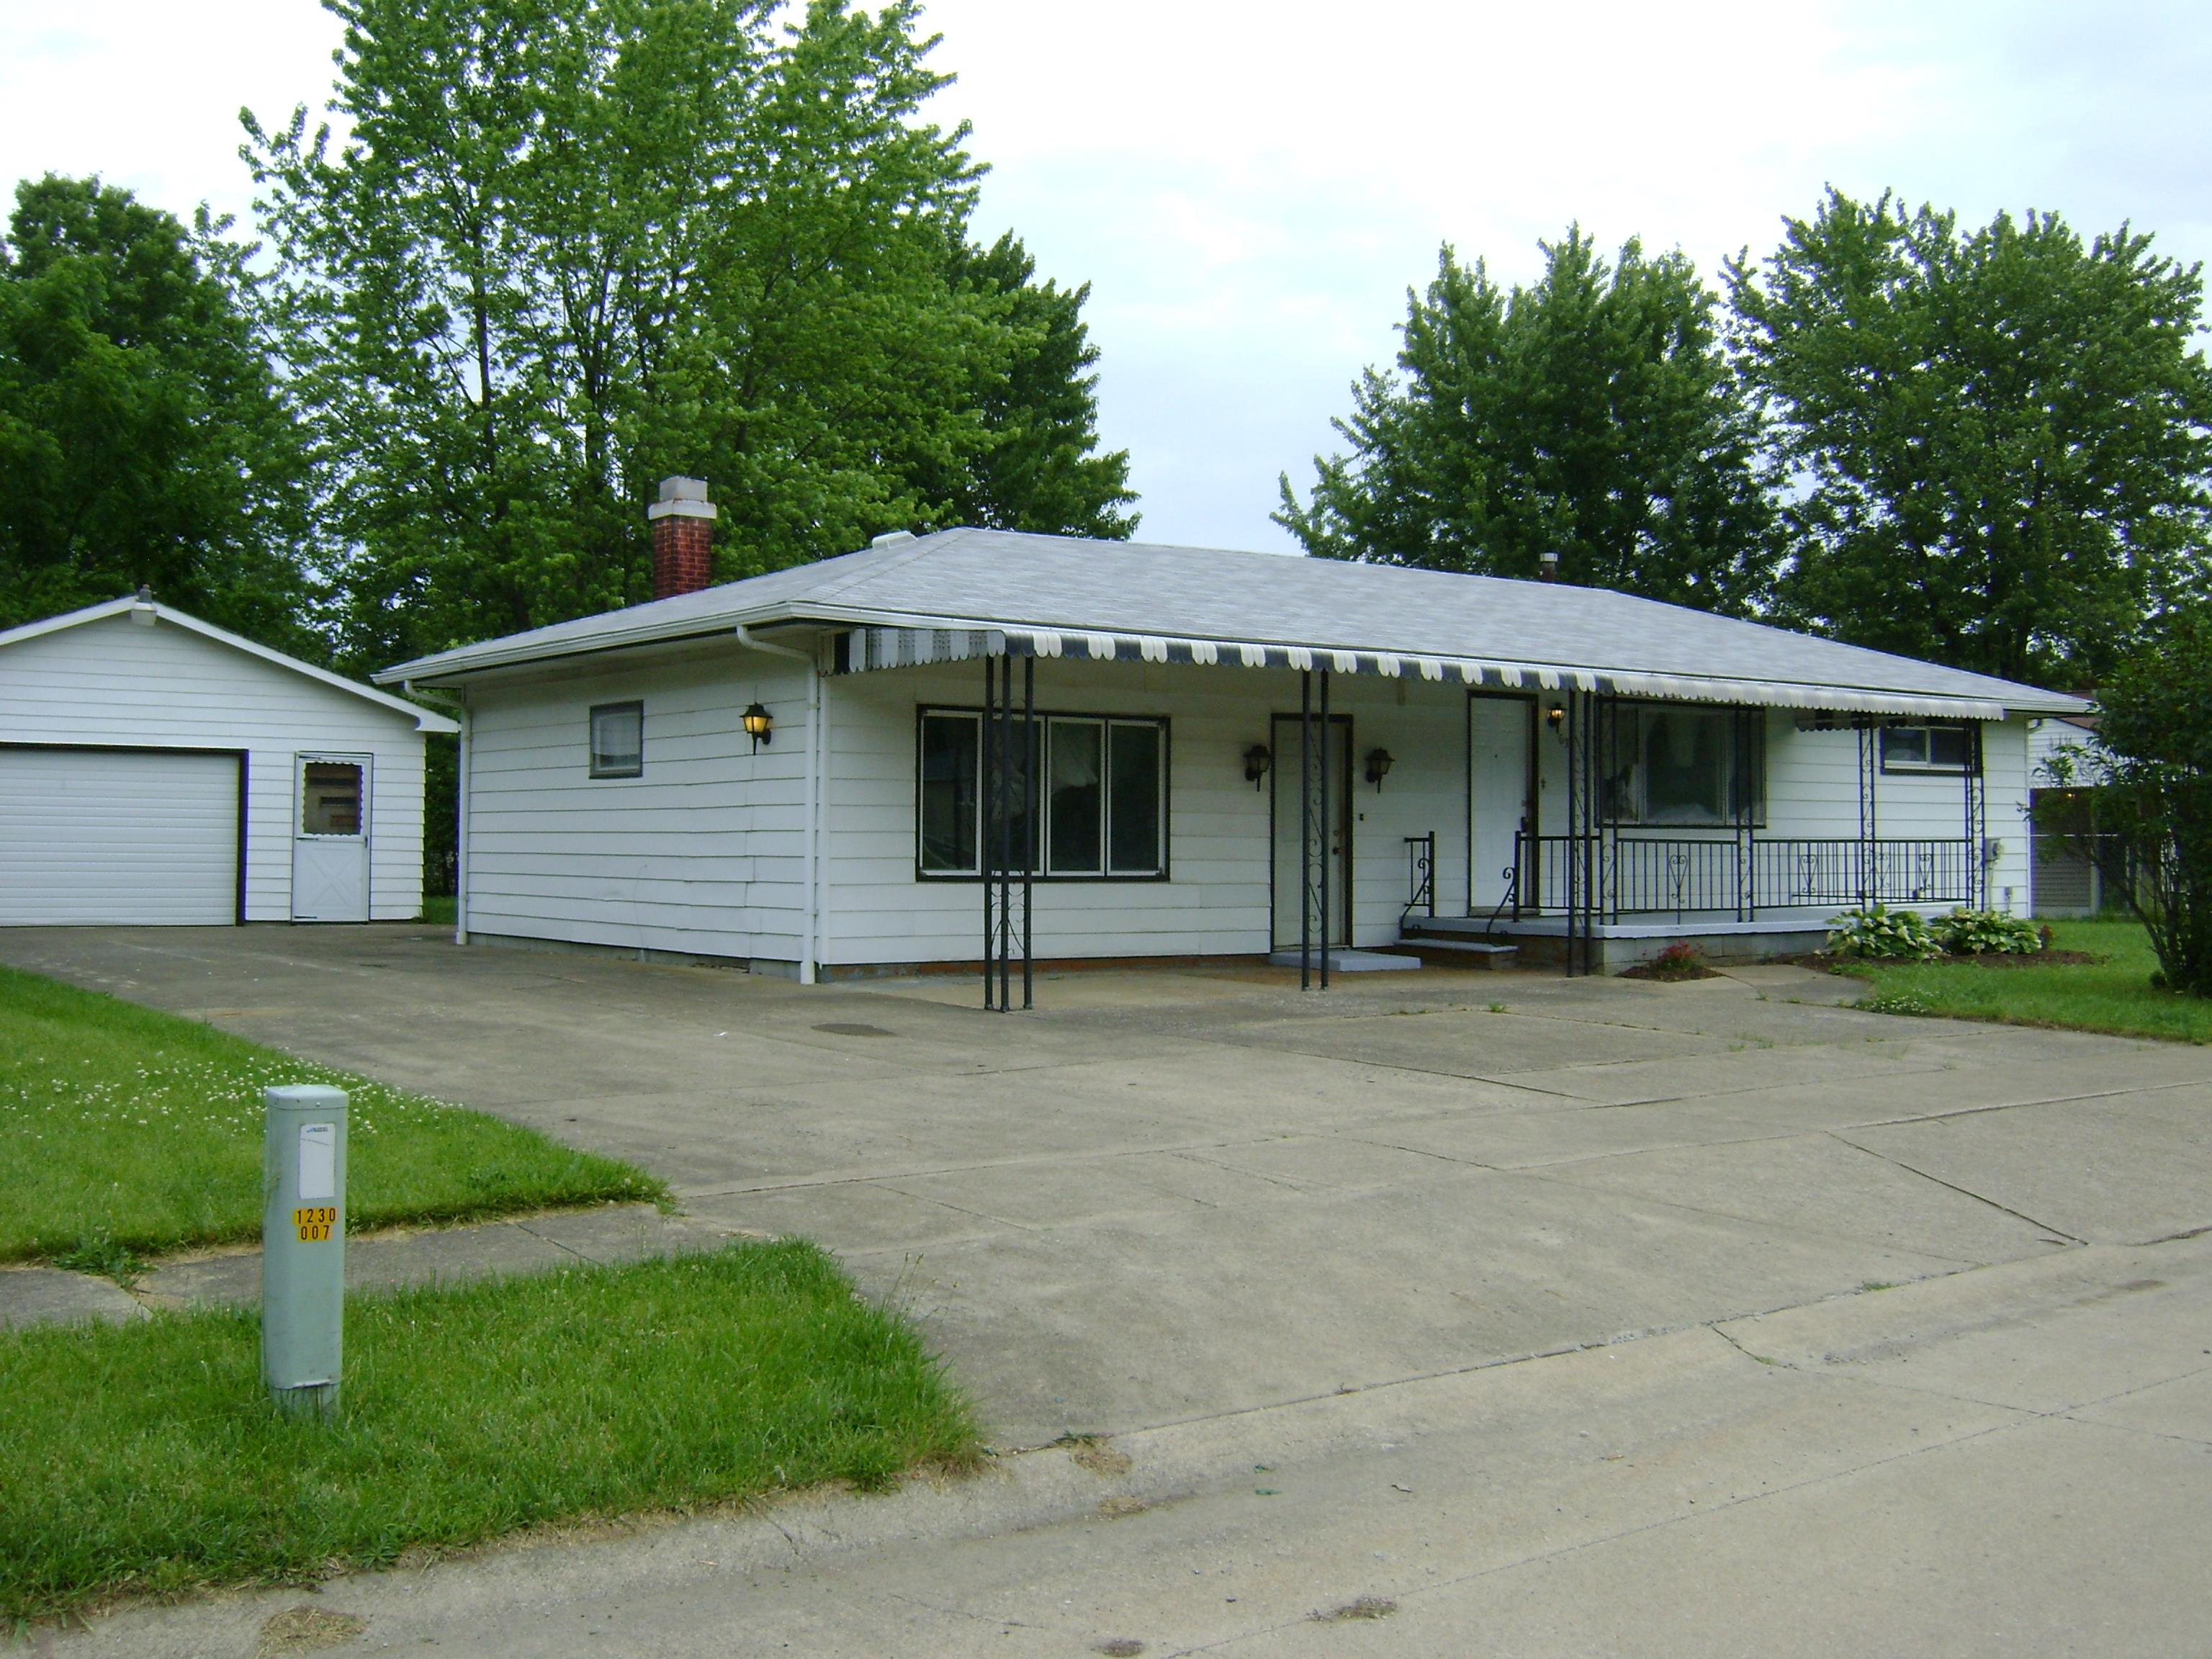 635 Wayne, Elyria, Ohio, 44035, SOLD HOME, 2 Bedroom ranch, family room, fireplace, 2-car garage, basement, remodeled